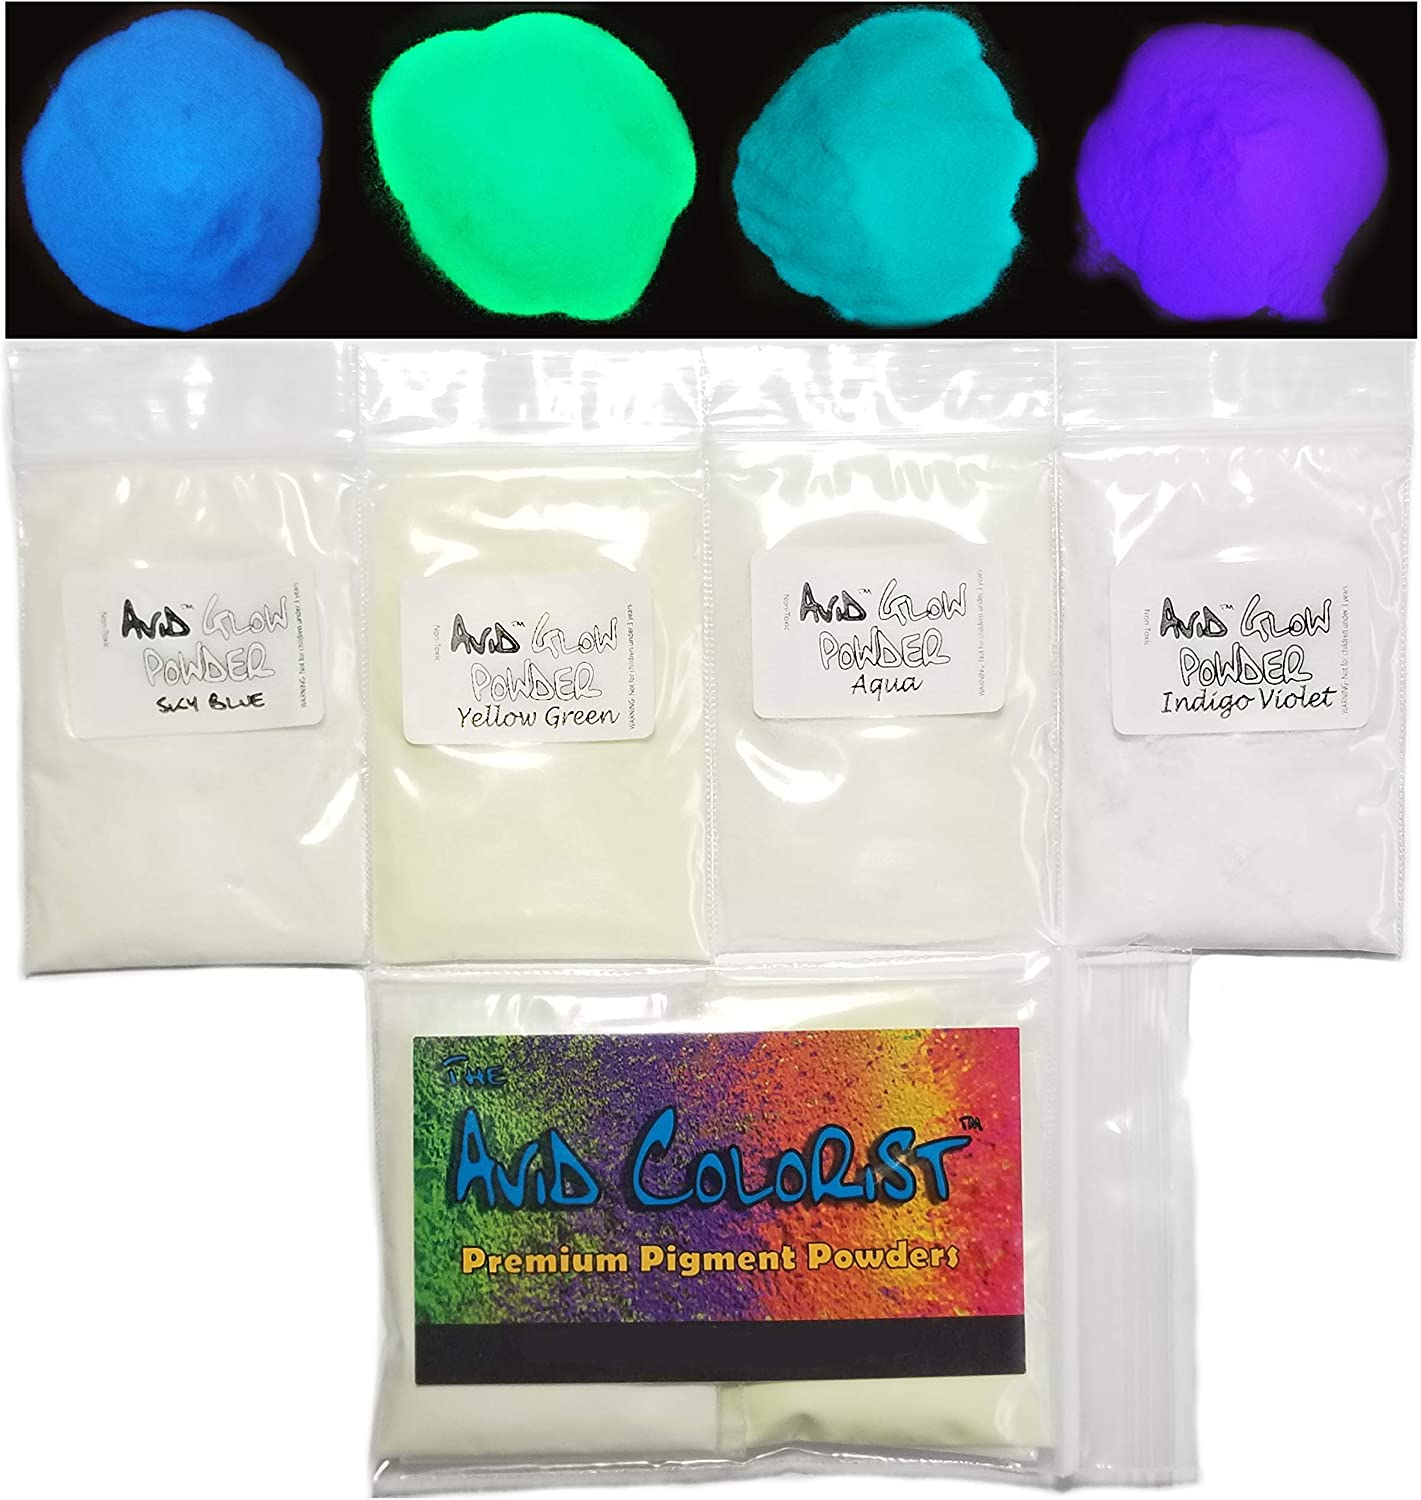 THE AVID COLORIST- Glow Powder Pigment- 4 Color Neutral in Daylight Pack- 2.1oz/60g Total- for Resin, Slime, Nail Polish, Coatings, Paint- Glow in The Dark Pigment Powders- Strontium Aluminate